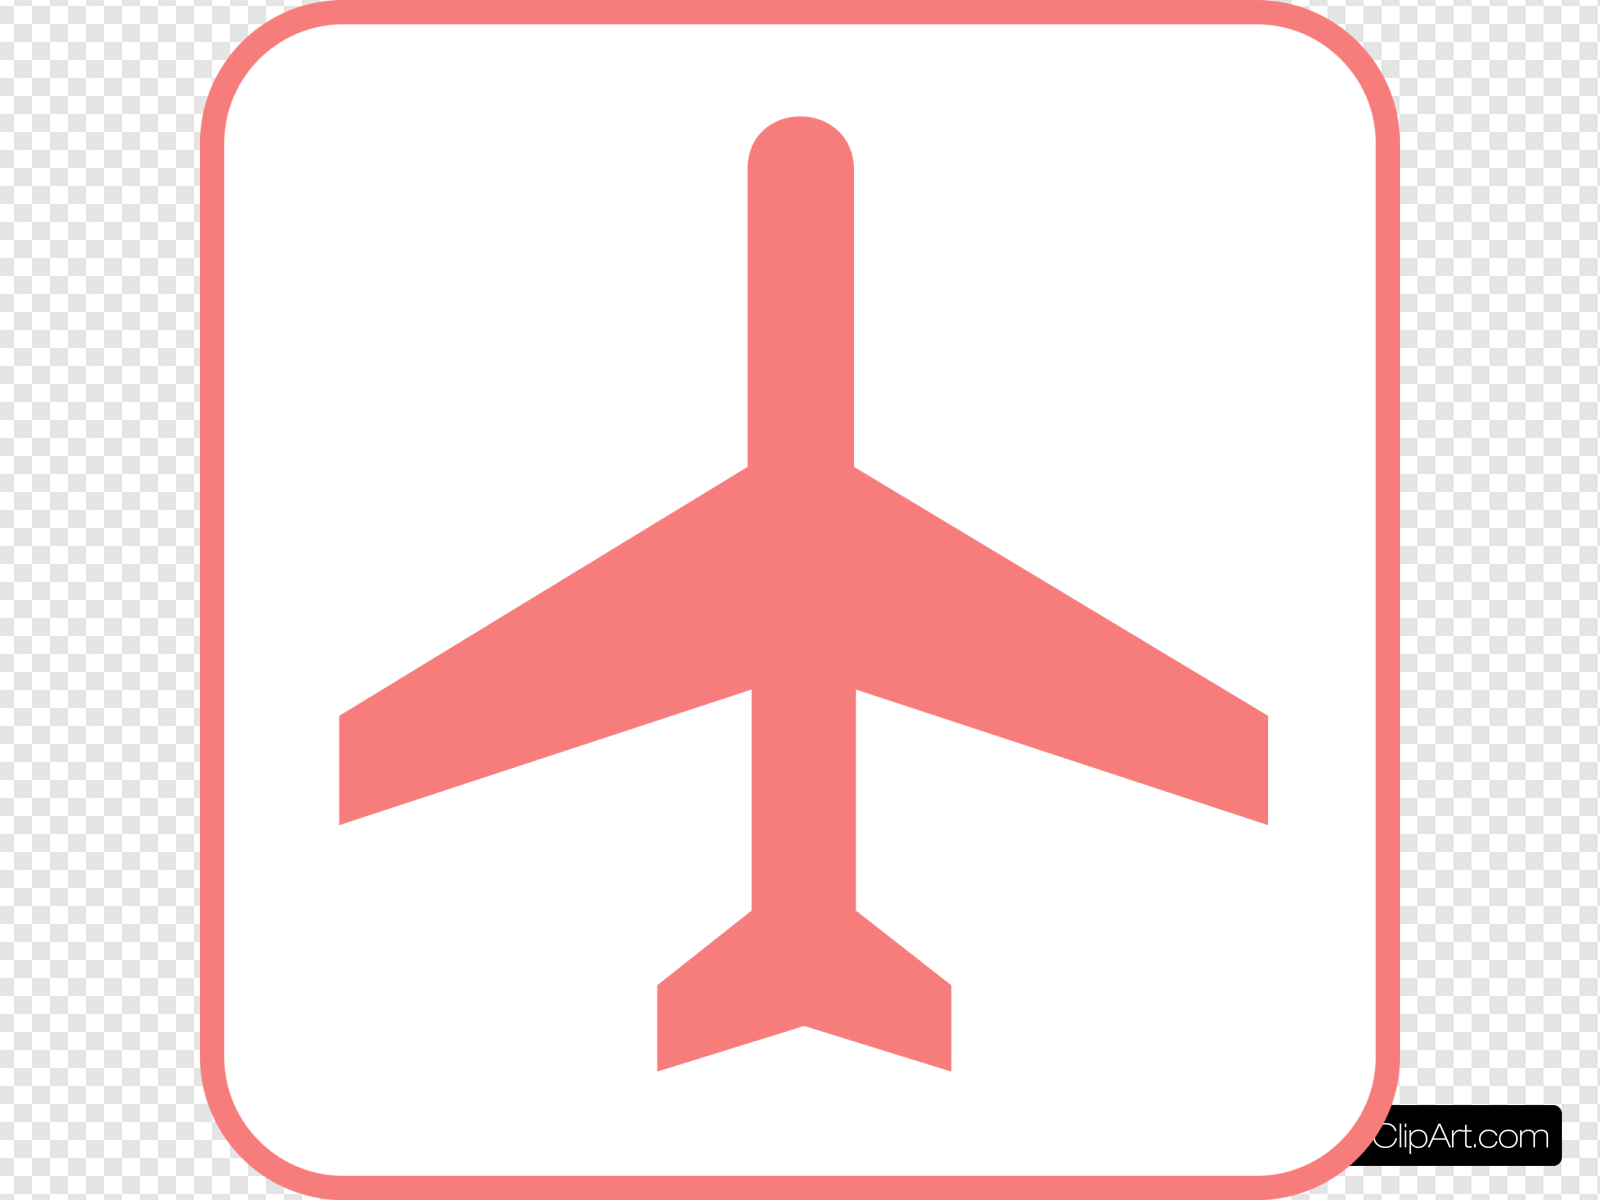 Pink Airplane Sign Clip art, Icon and SVG.